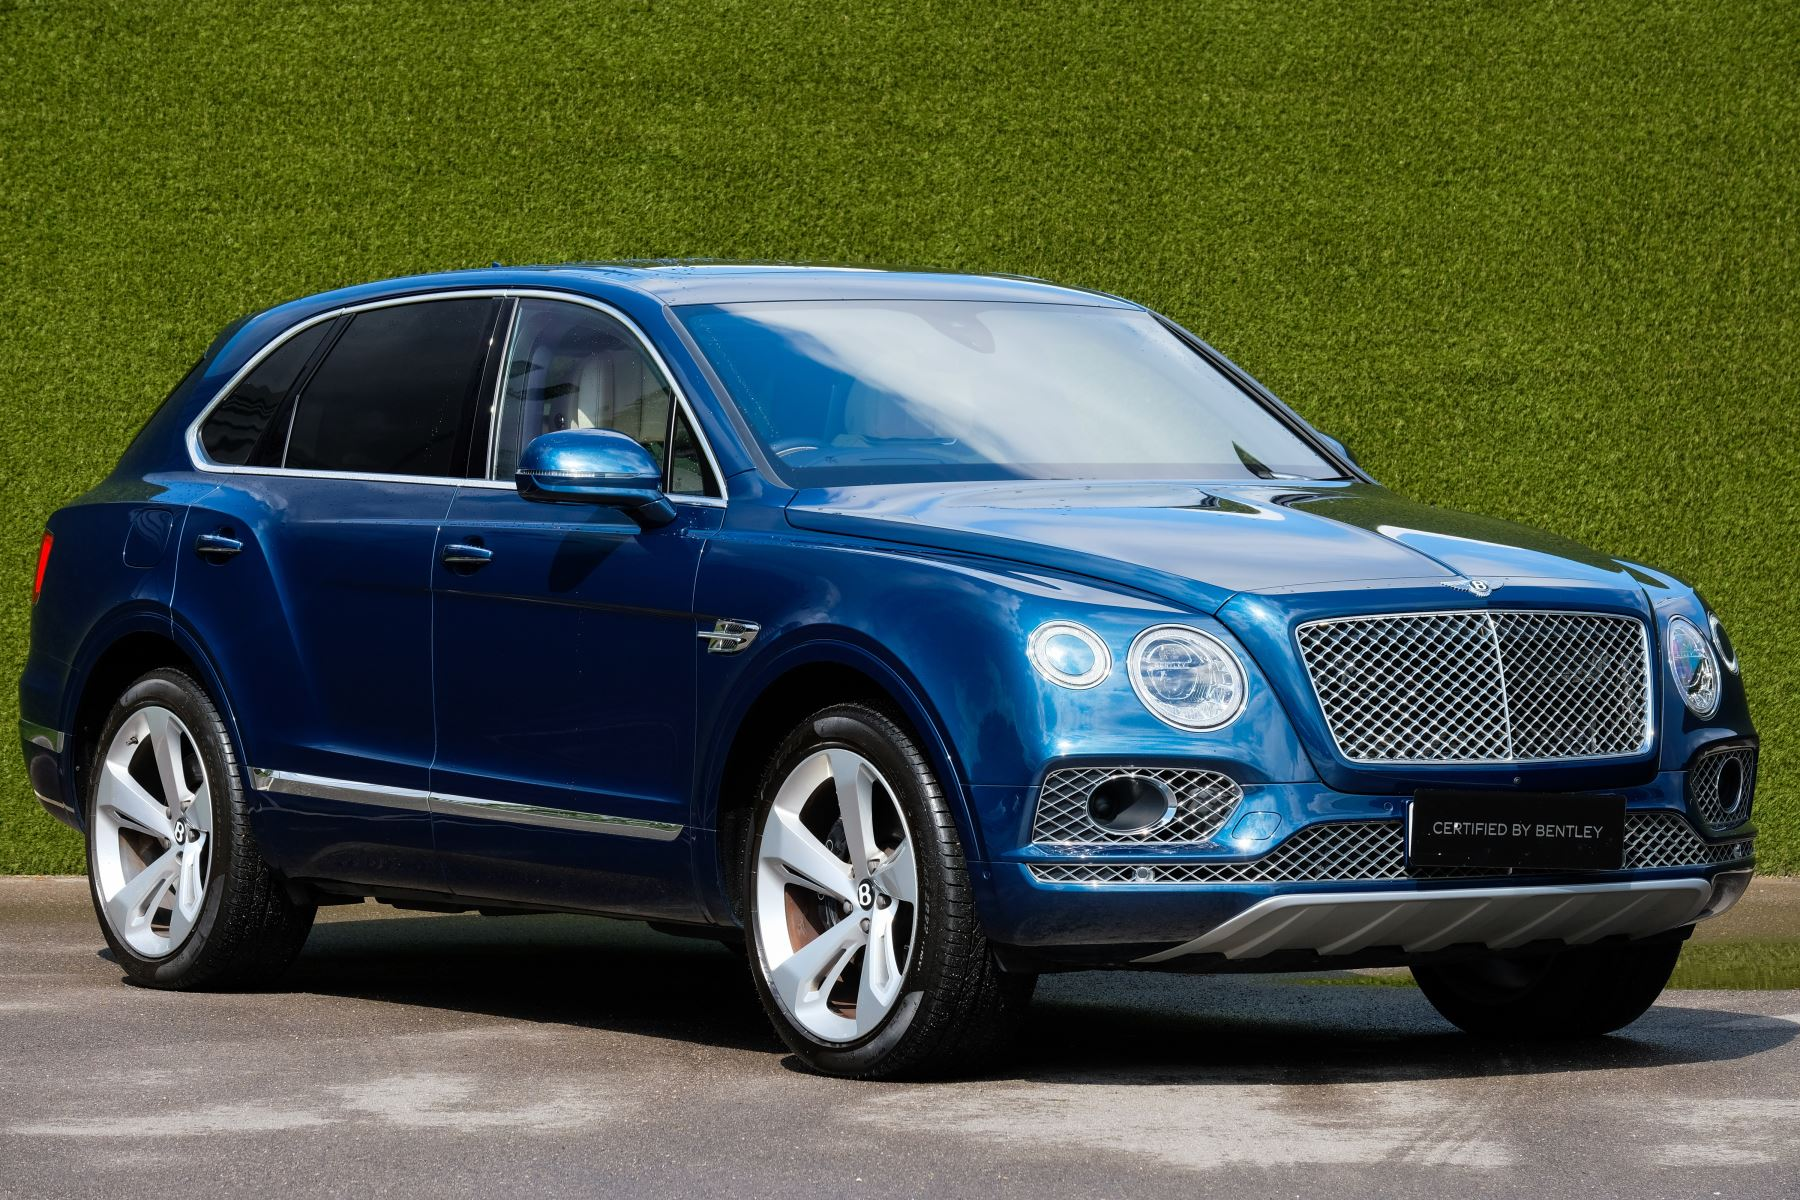 Bentley Bentayga 6.0 W12 - All Terrain, Sunshine, City and Touring Specification image 1